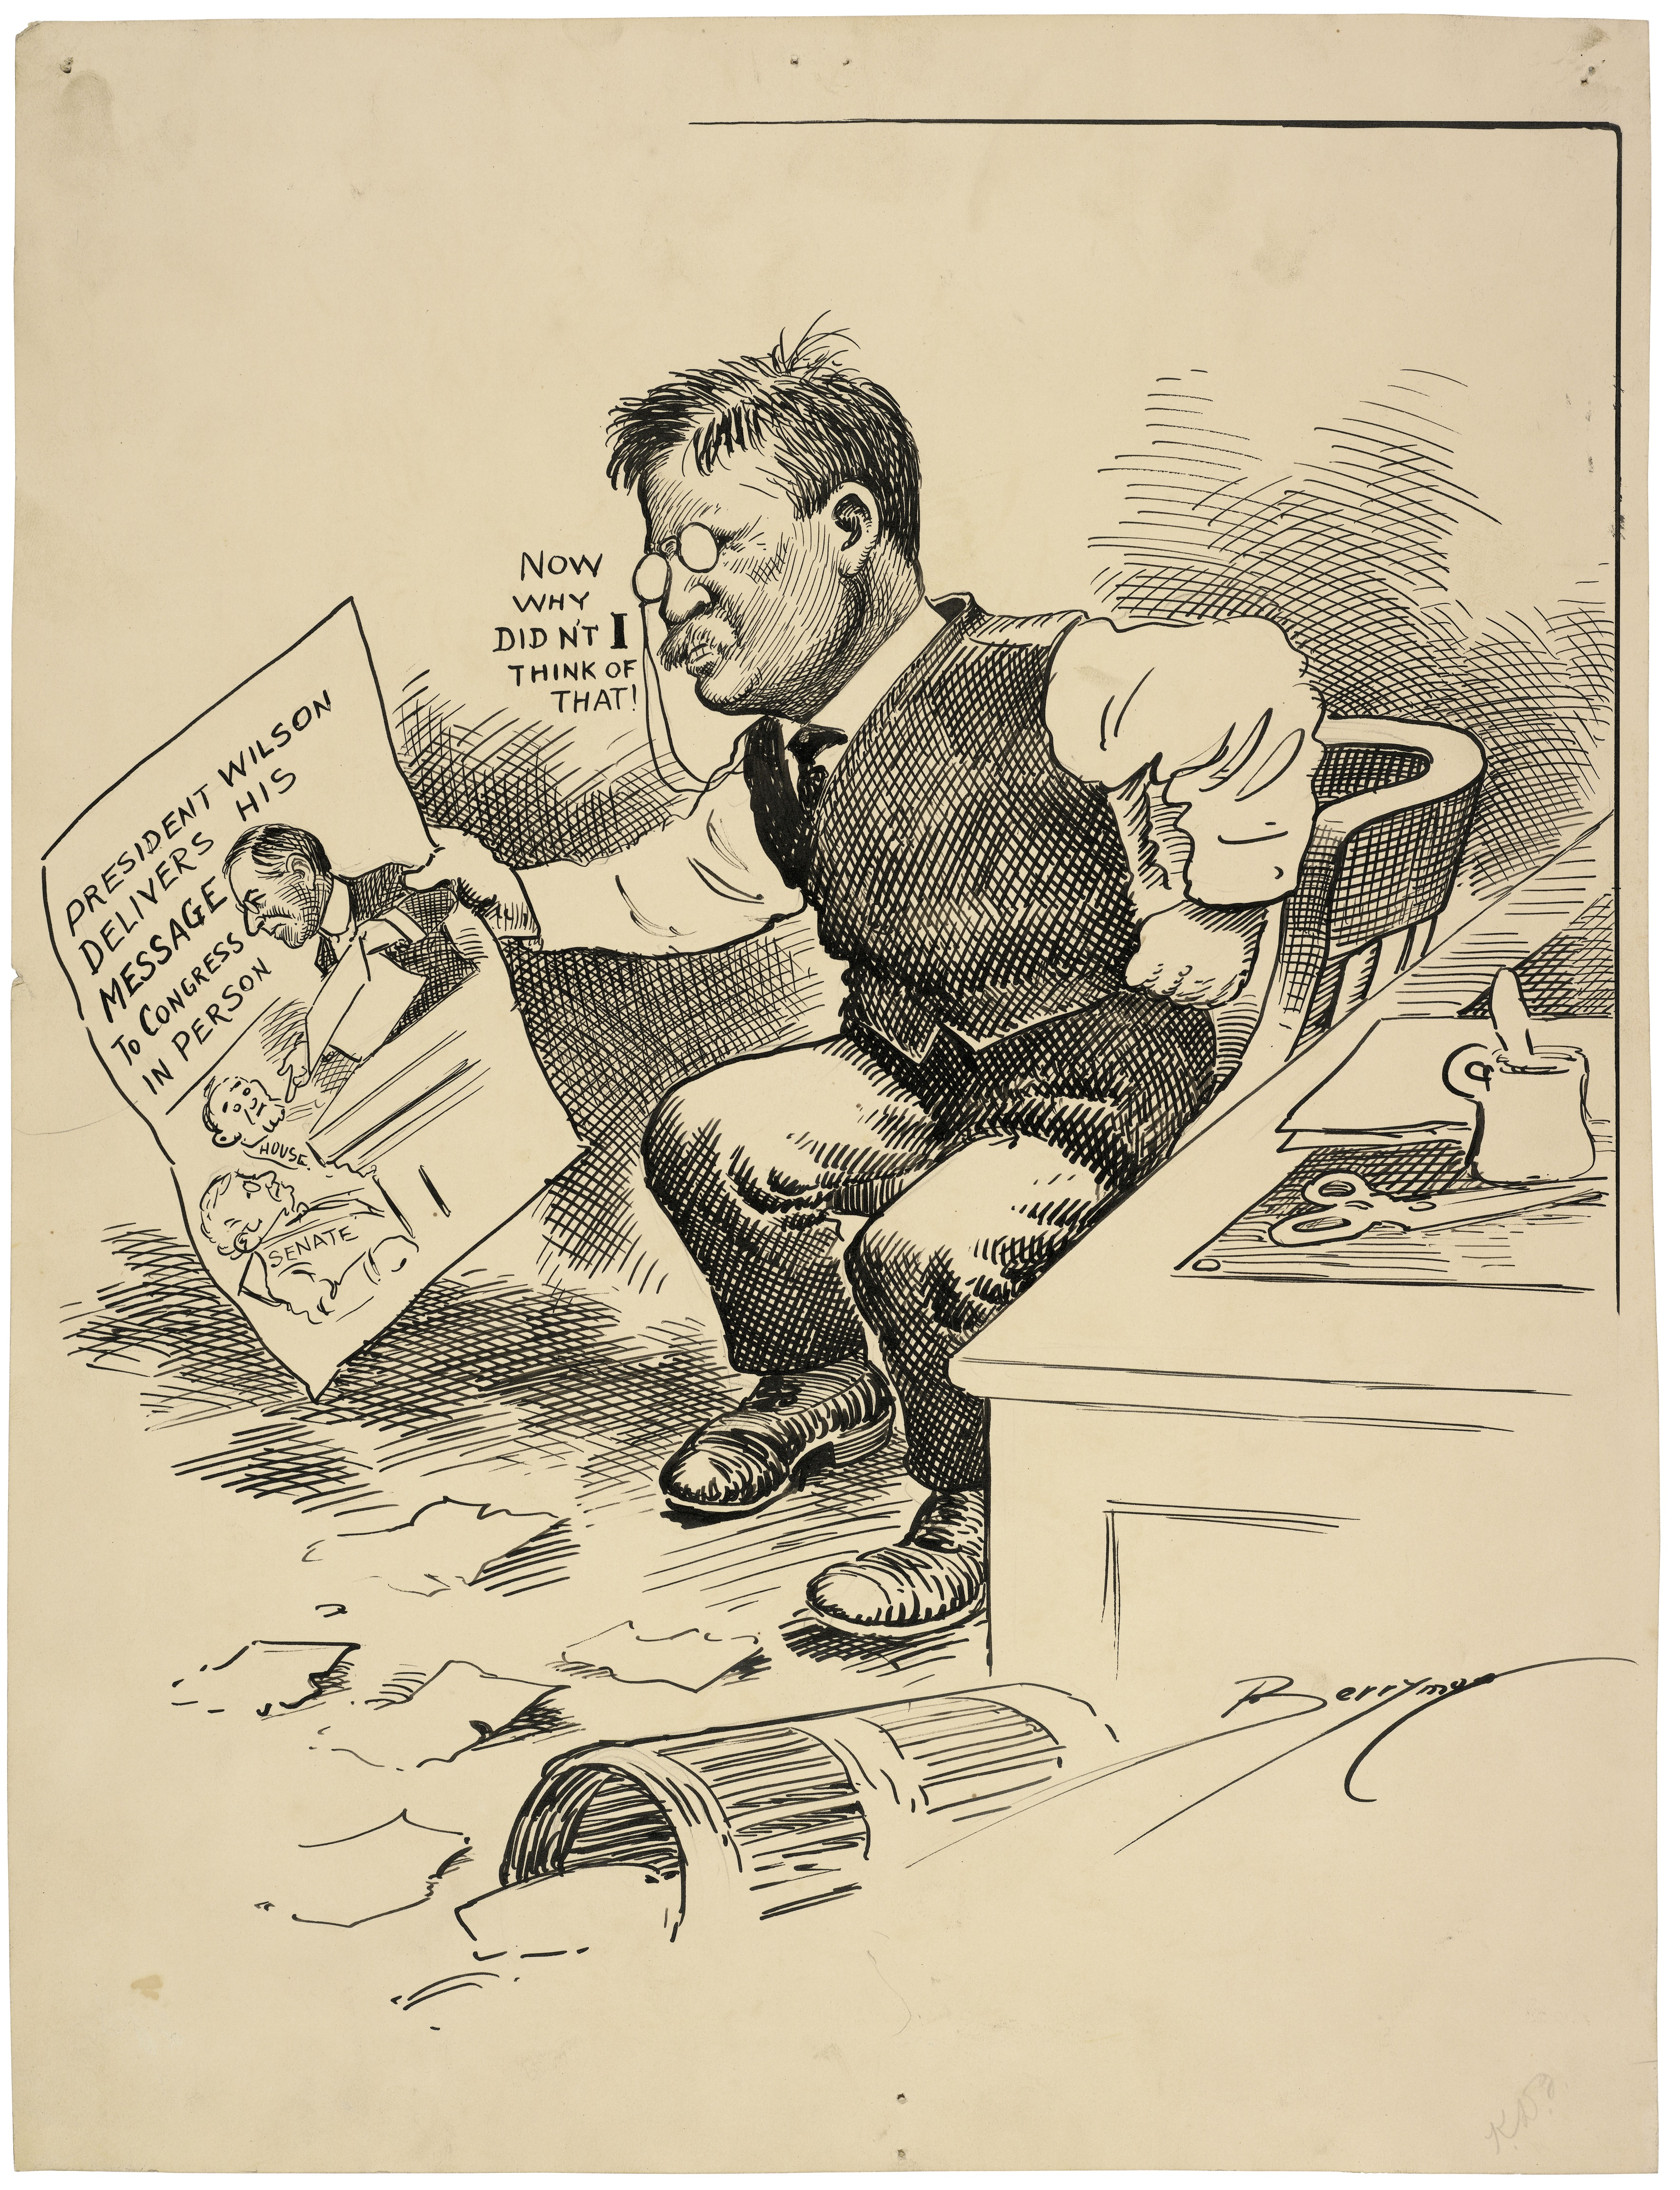 Now Why Didn't I Think of That! by Clifford K. Berryman, 4/8/1913. (National Archives Identifier 6011009)